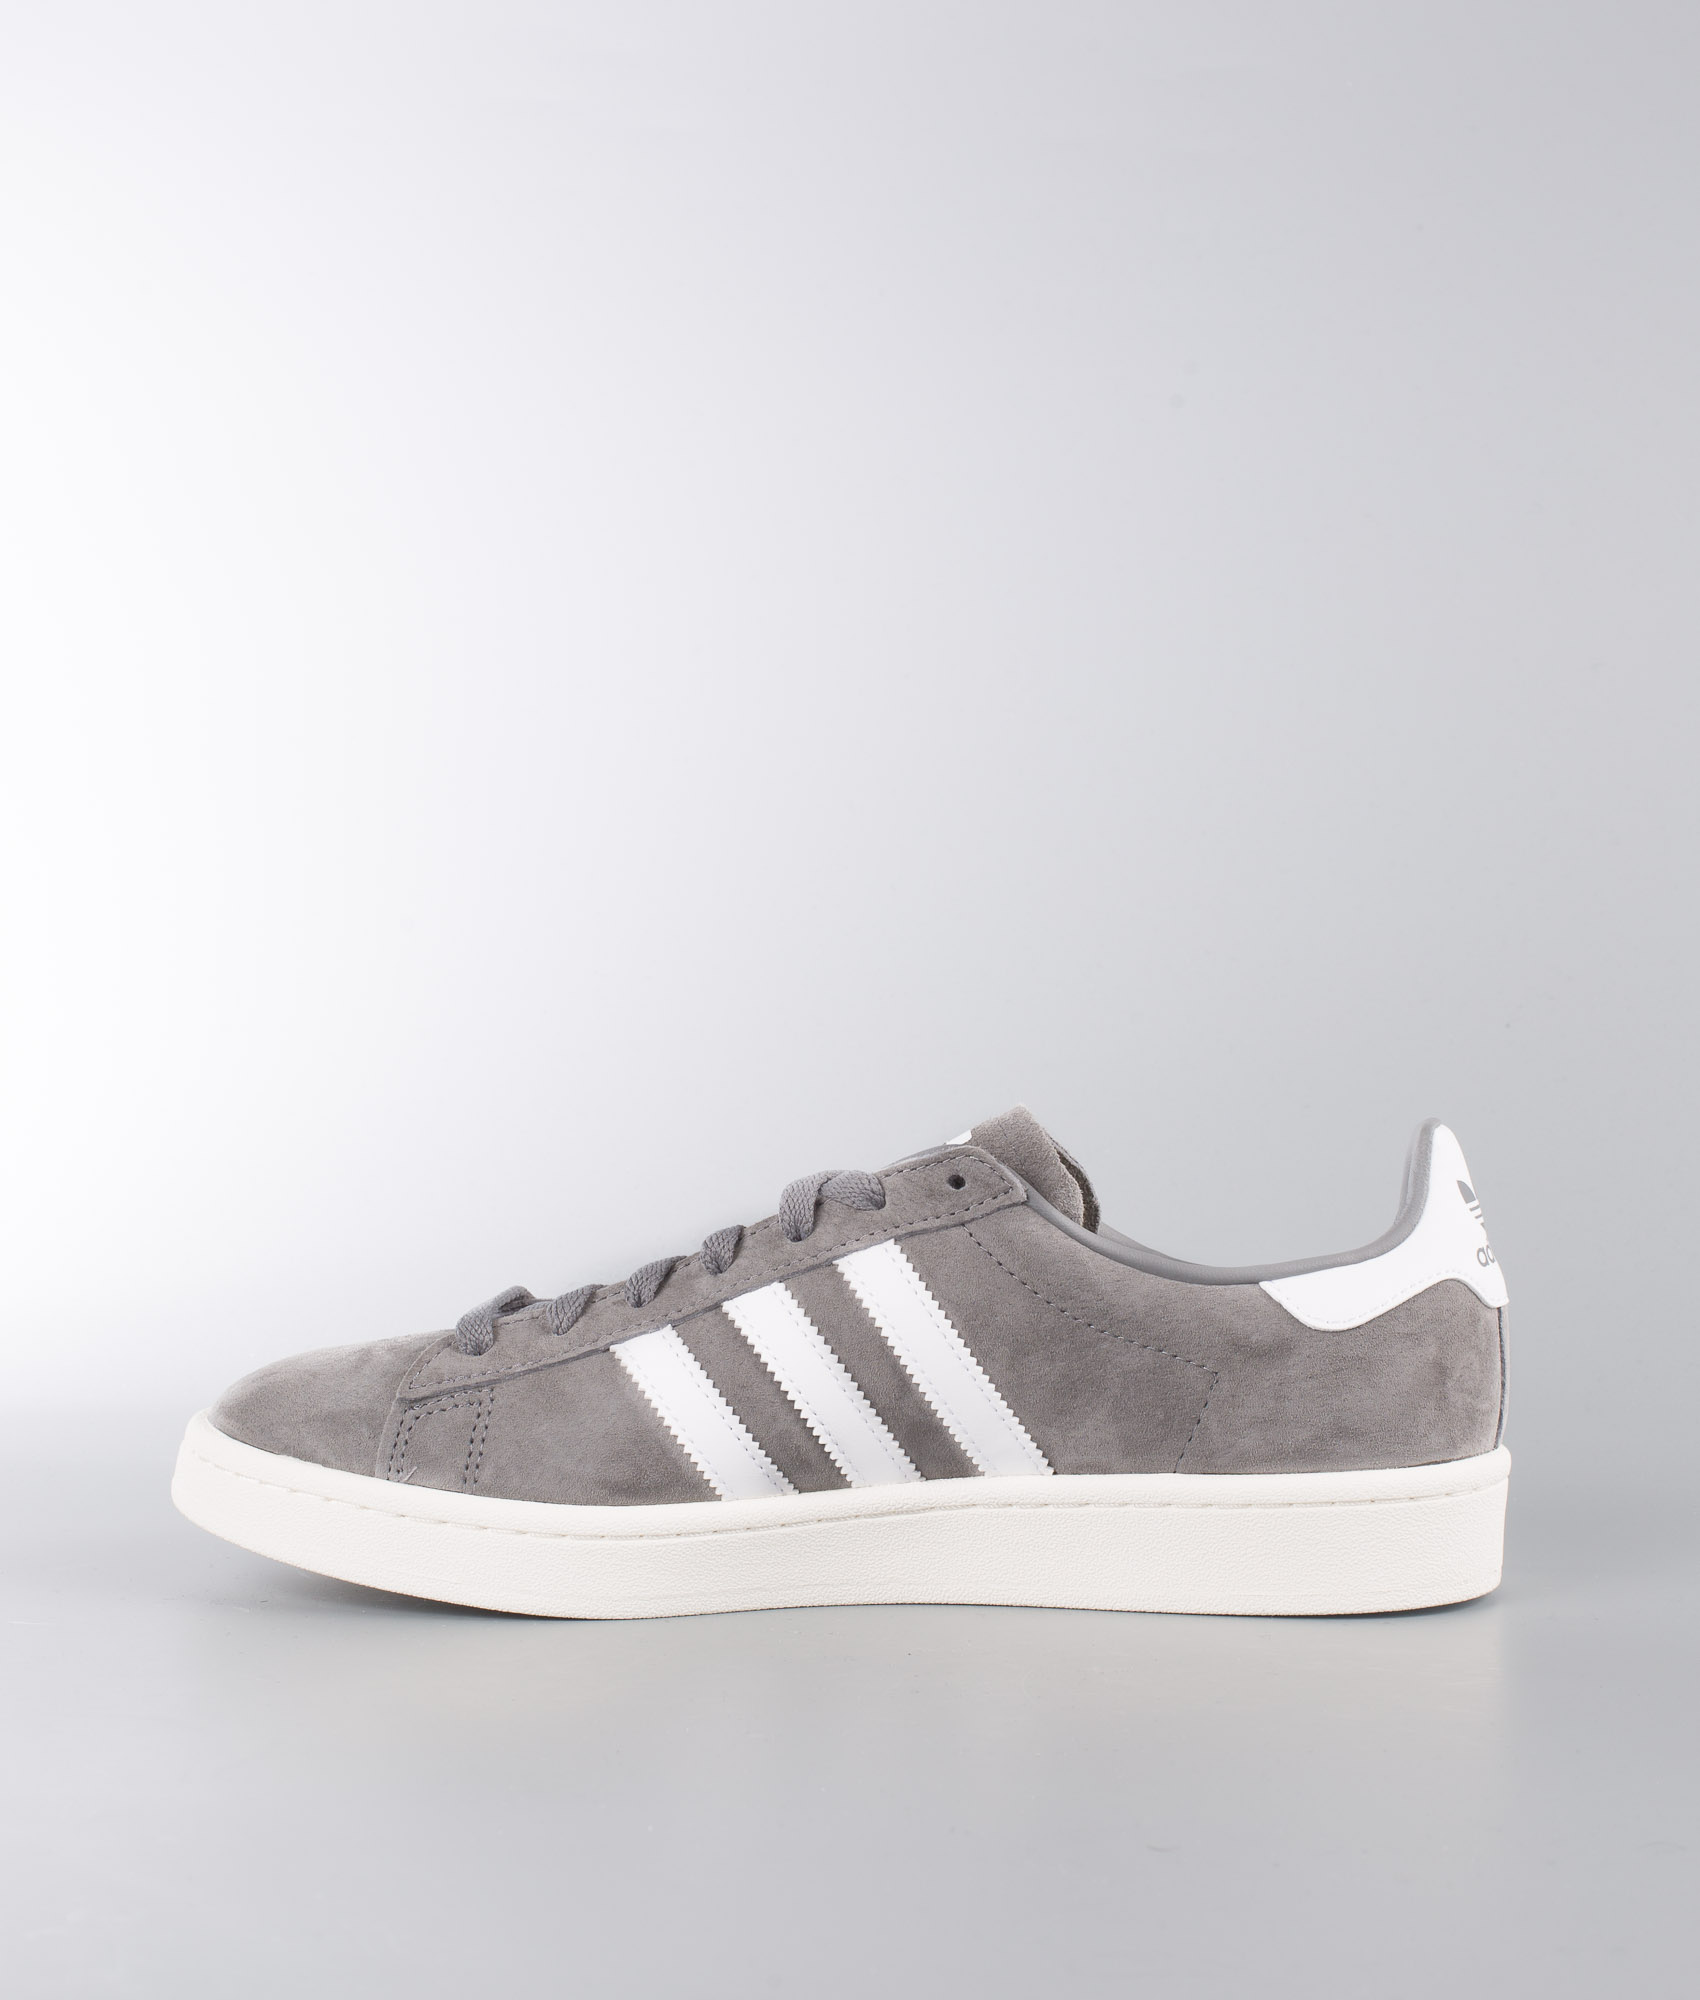 Grey Whitecore Adidas Campus Schuhe White Originals Threefootwear PZwuOXlkiT